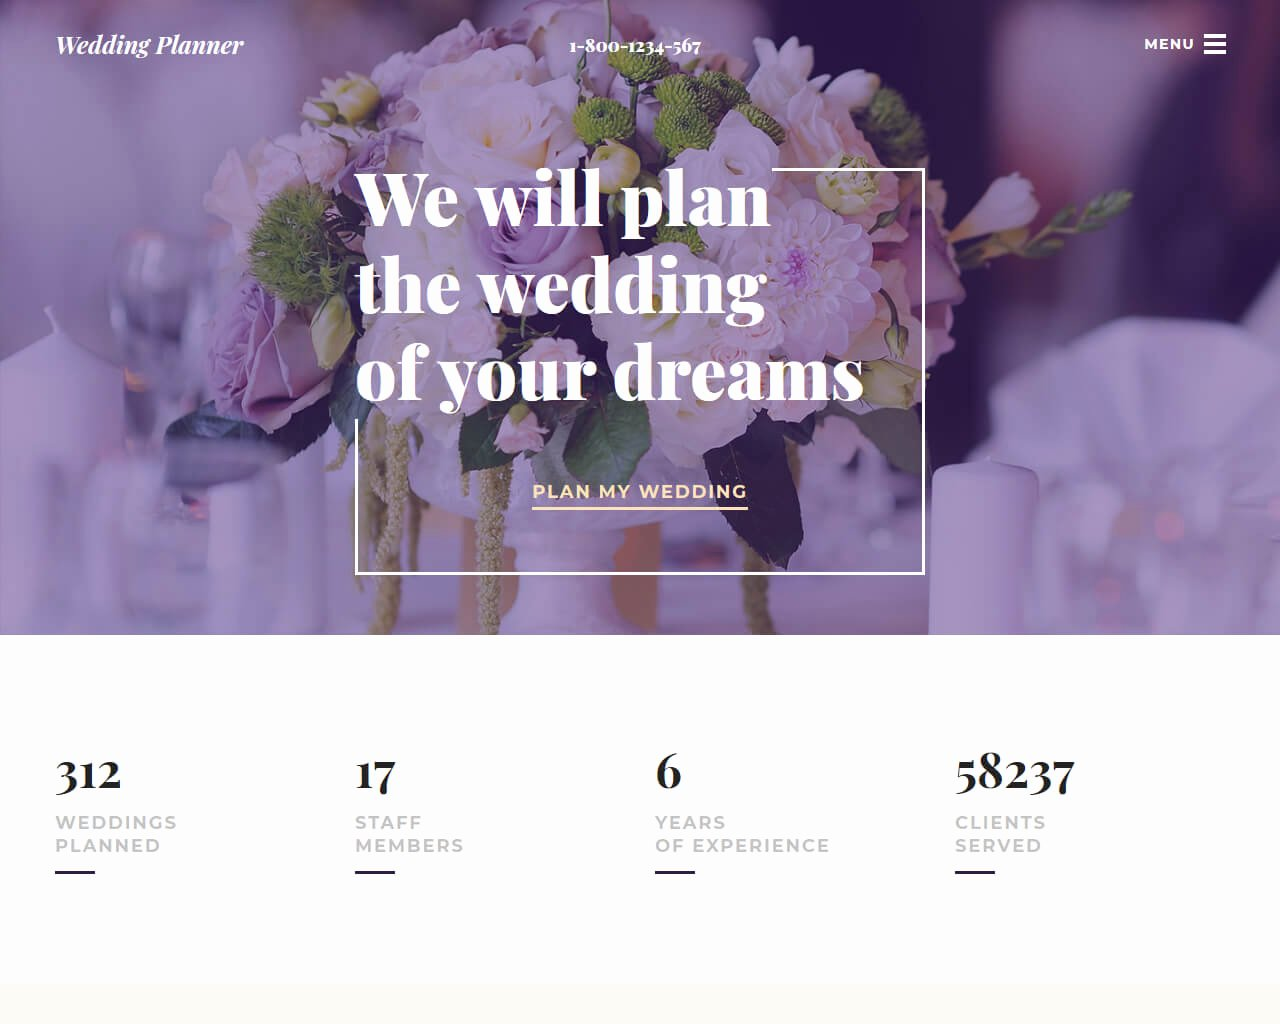 Free Wedding Plan Template Elegant 20 Best Wedding Website Templates for Your Special Day